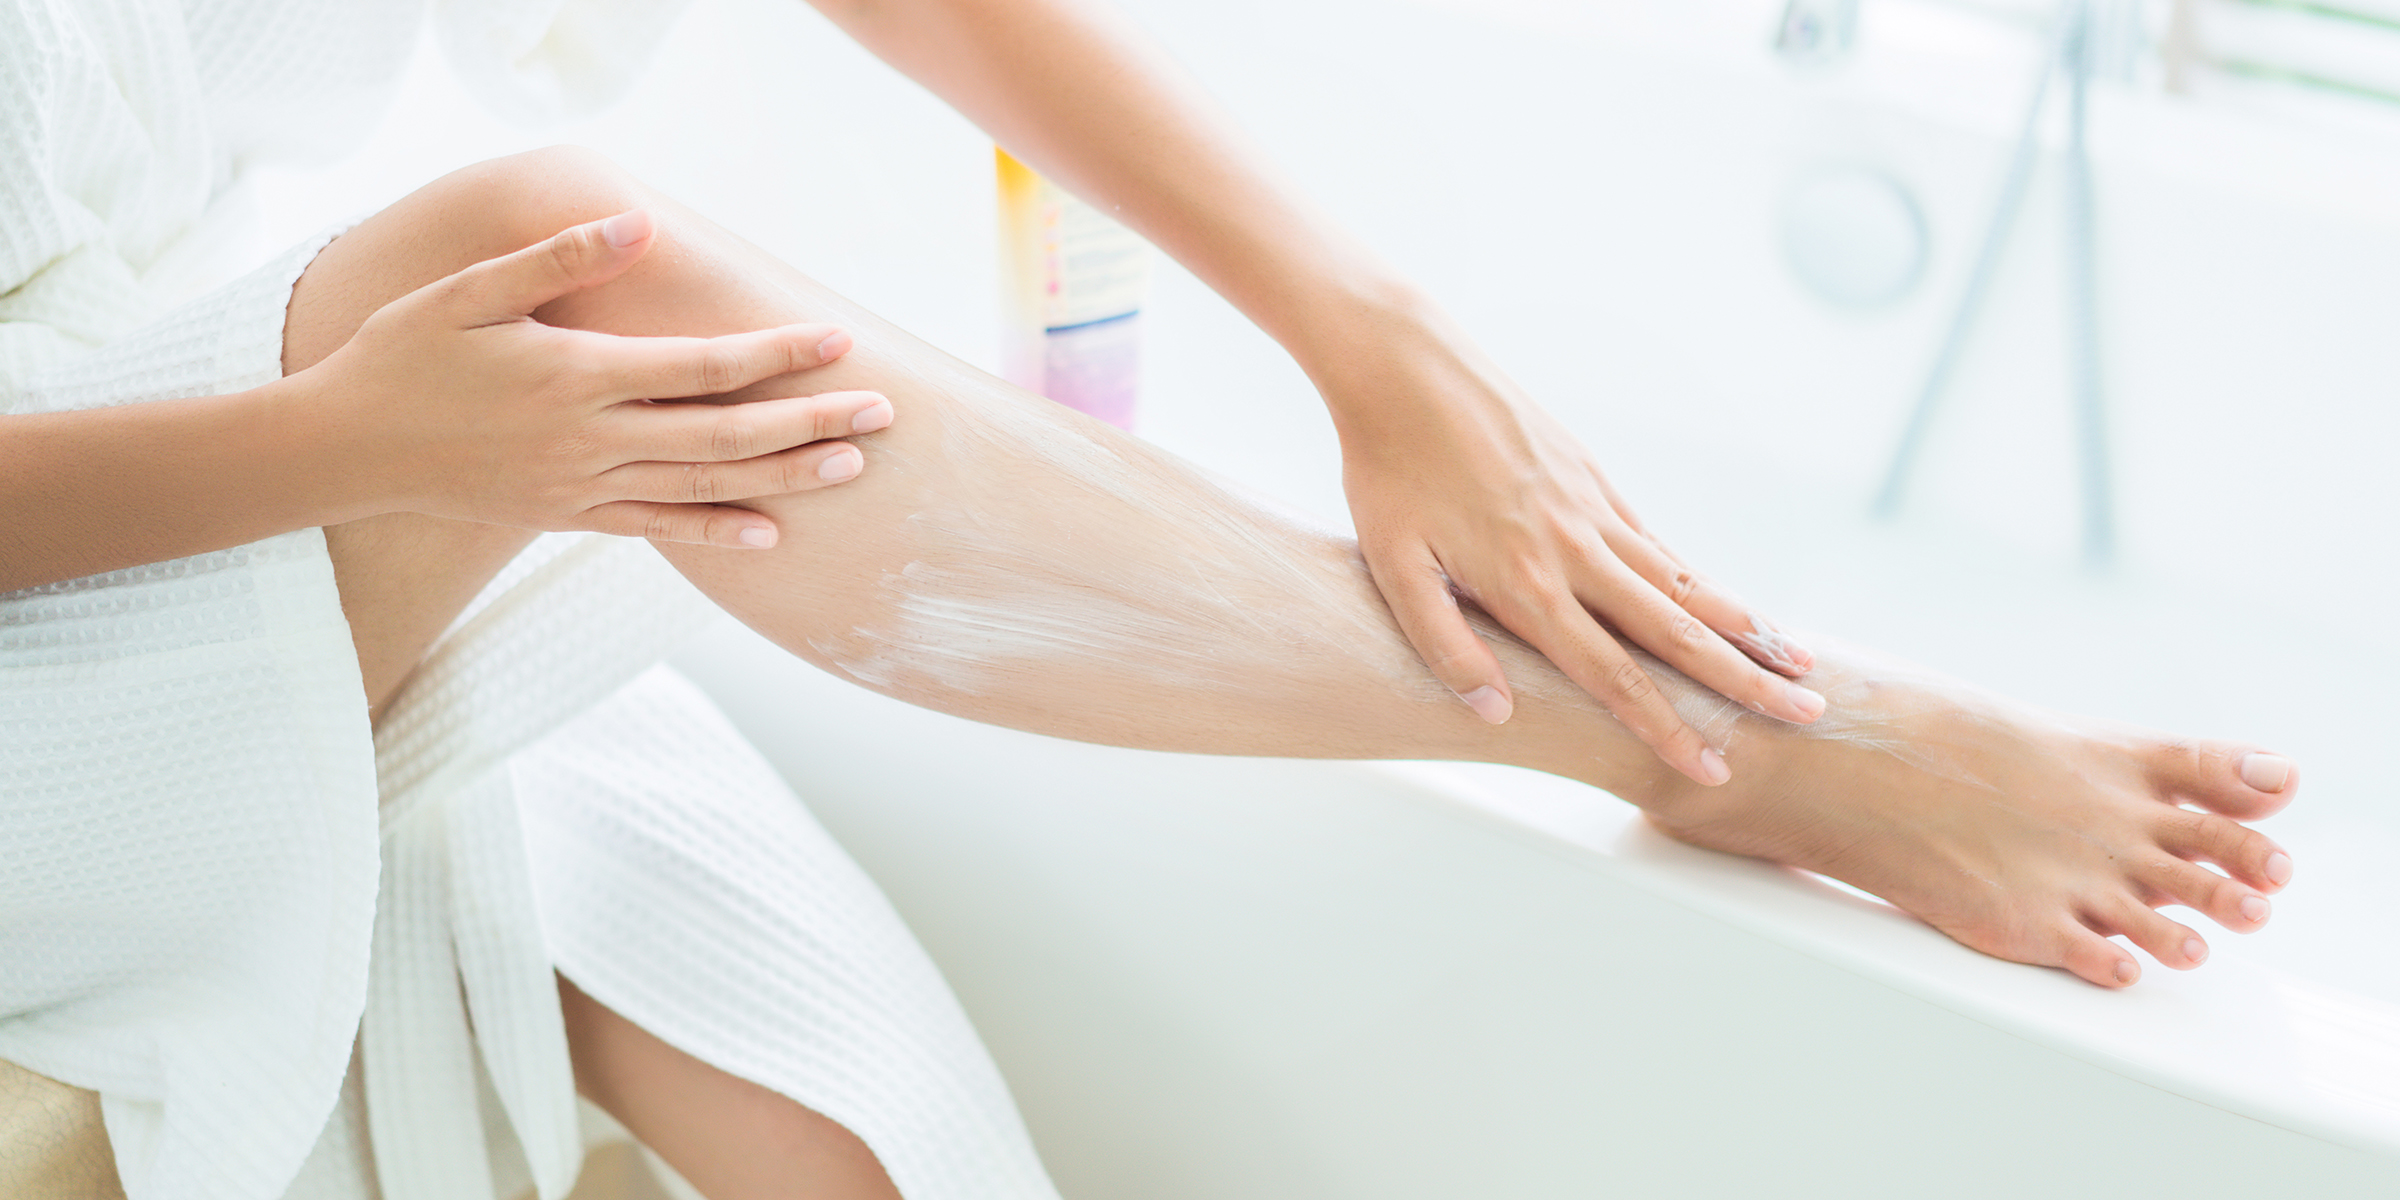 You can apply this lotion directly to wet skin — and it's a game changer